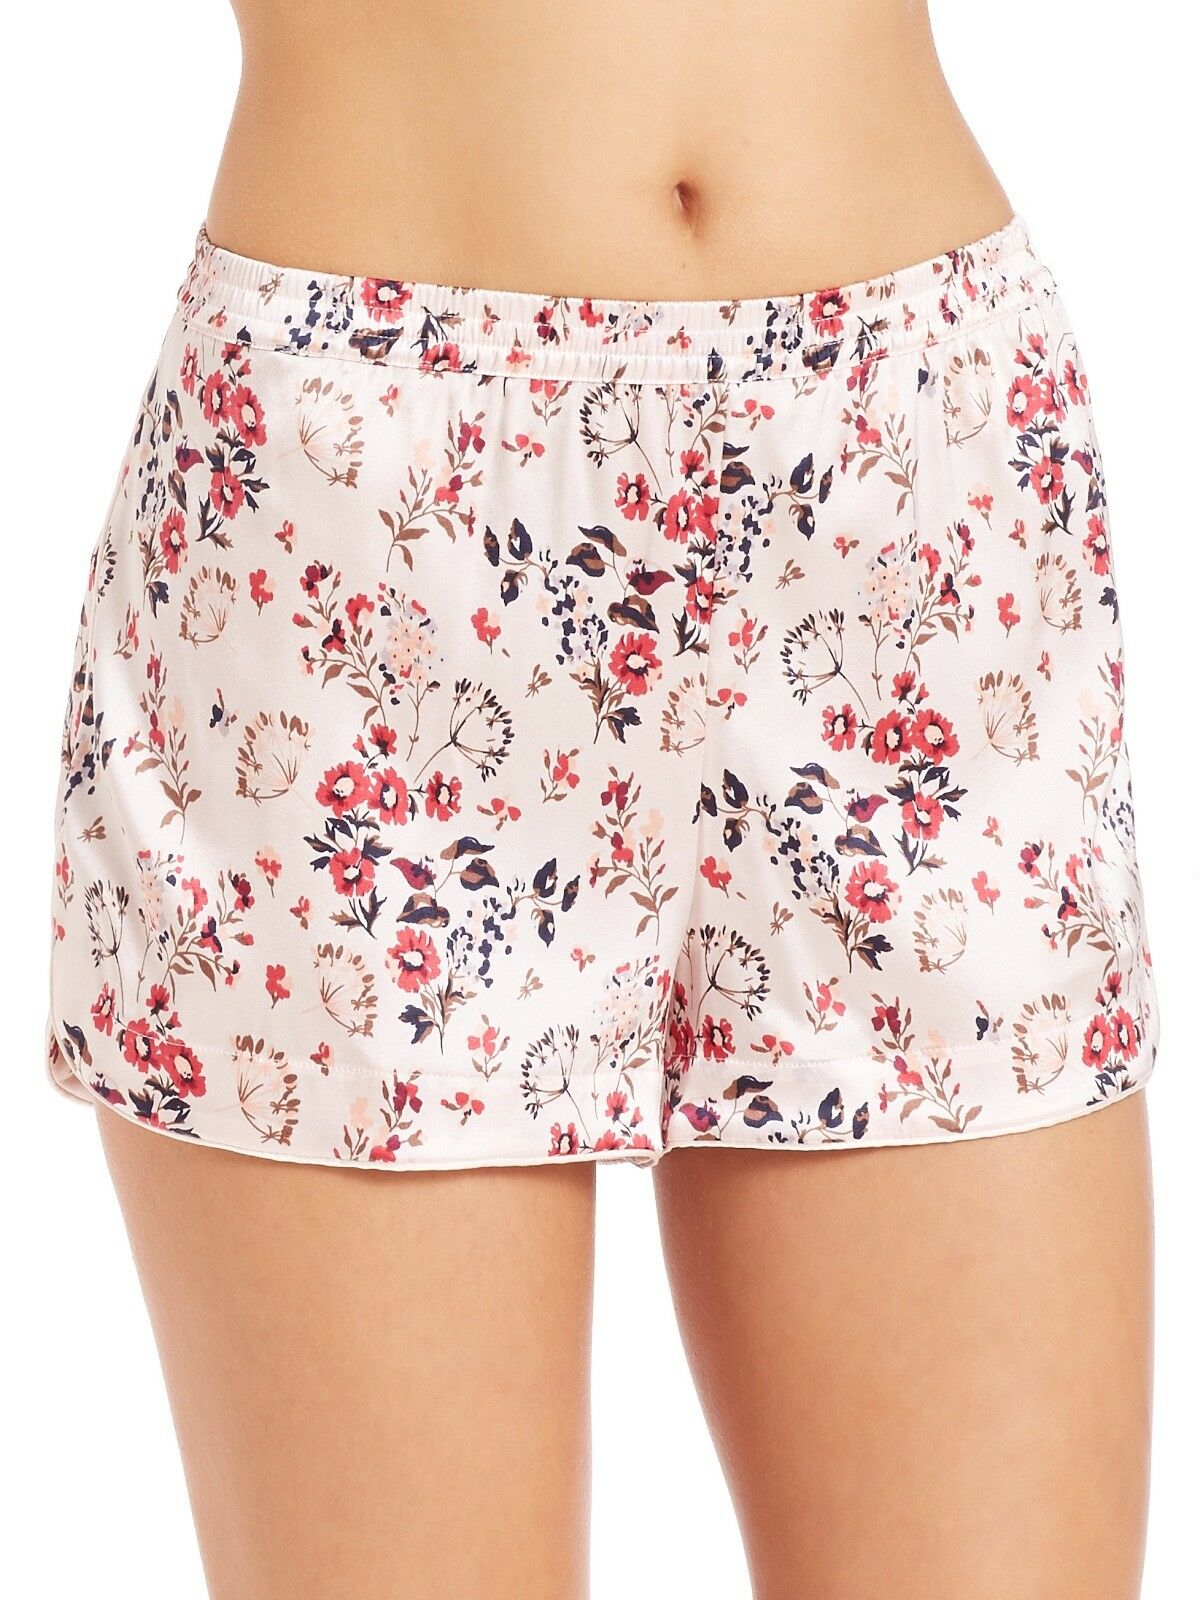 Stella McCartney Elie Leaping Pink Floral Print Stretch Silk Shorts Size Med New